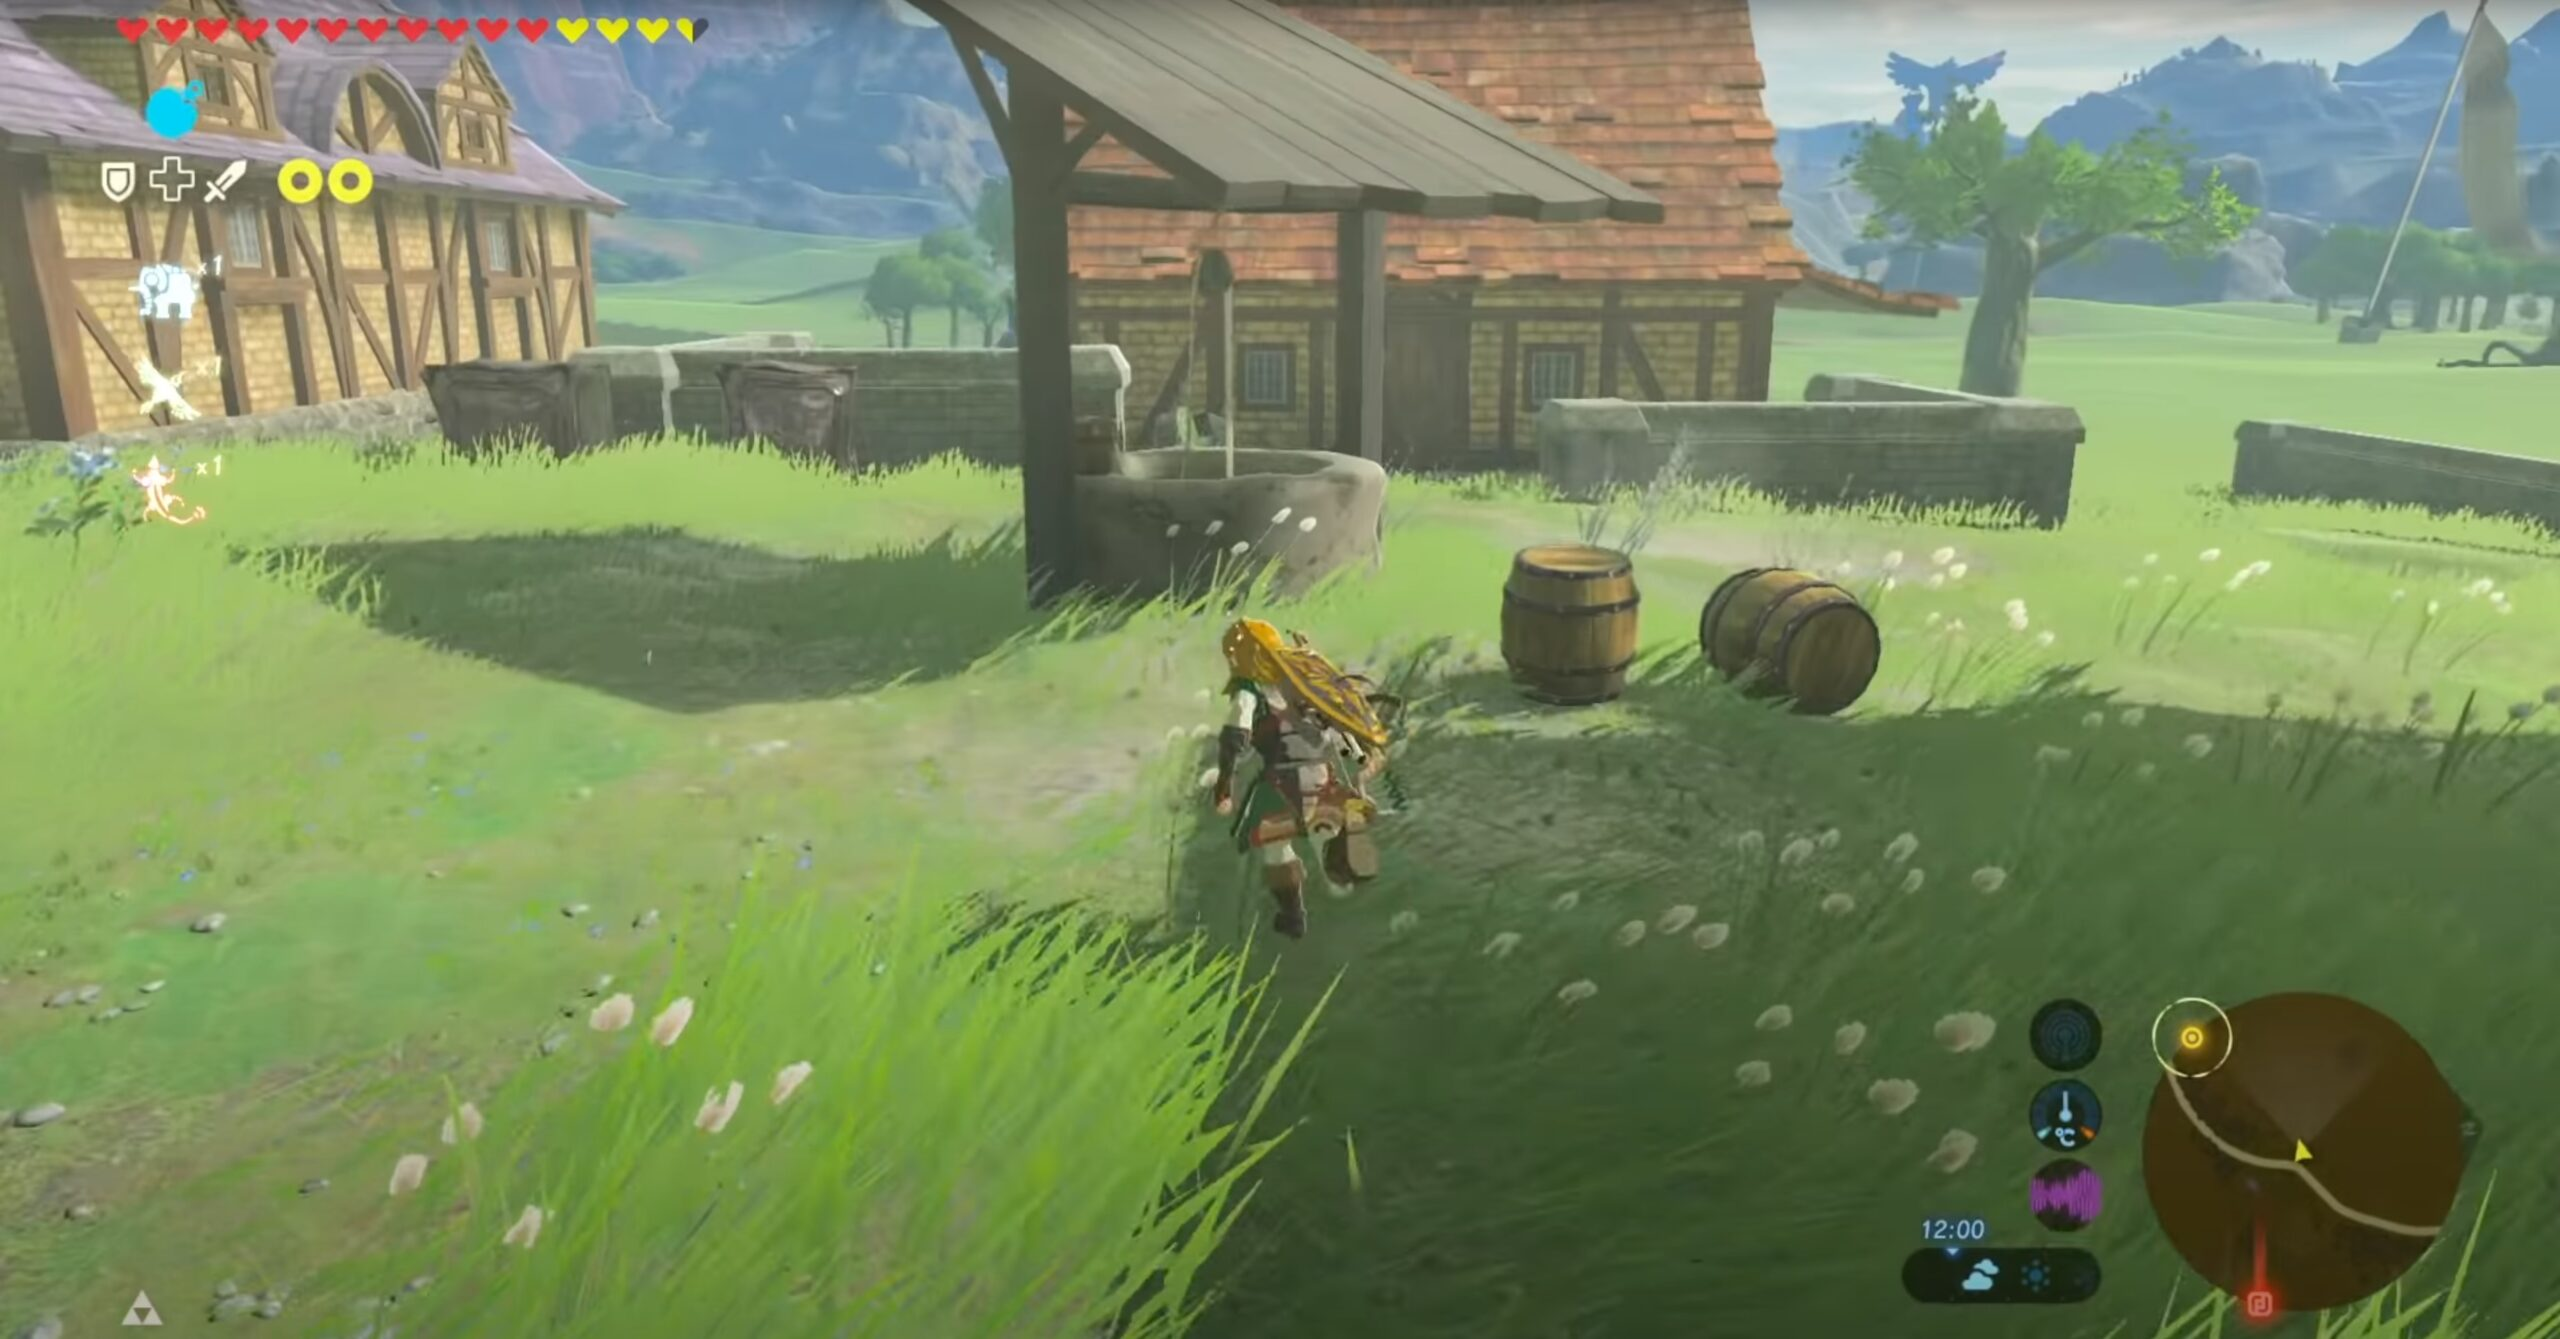 Zelda Breath Of The Wild New Mod Rebuilds Hyrule With Age Of Calamity Content